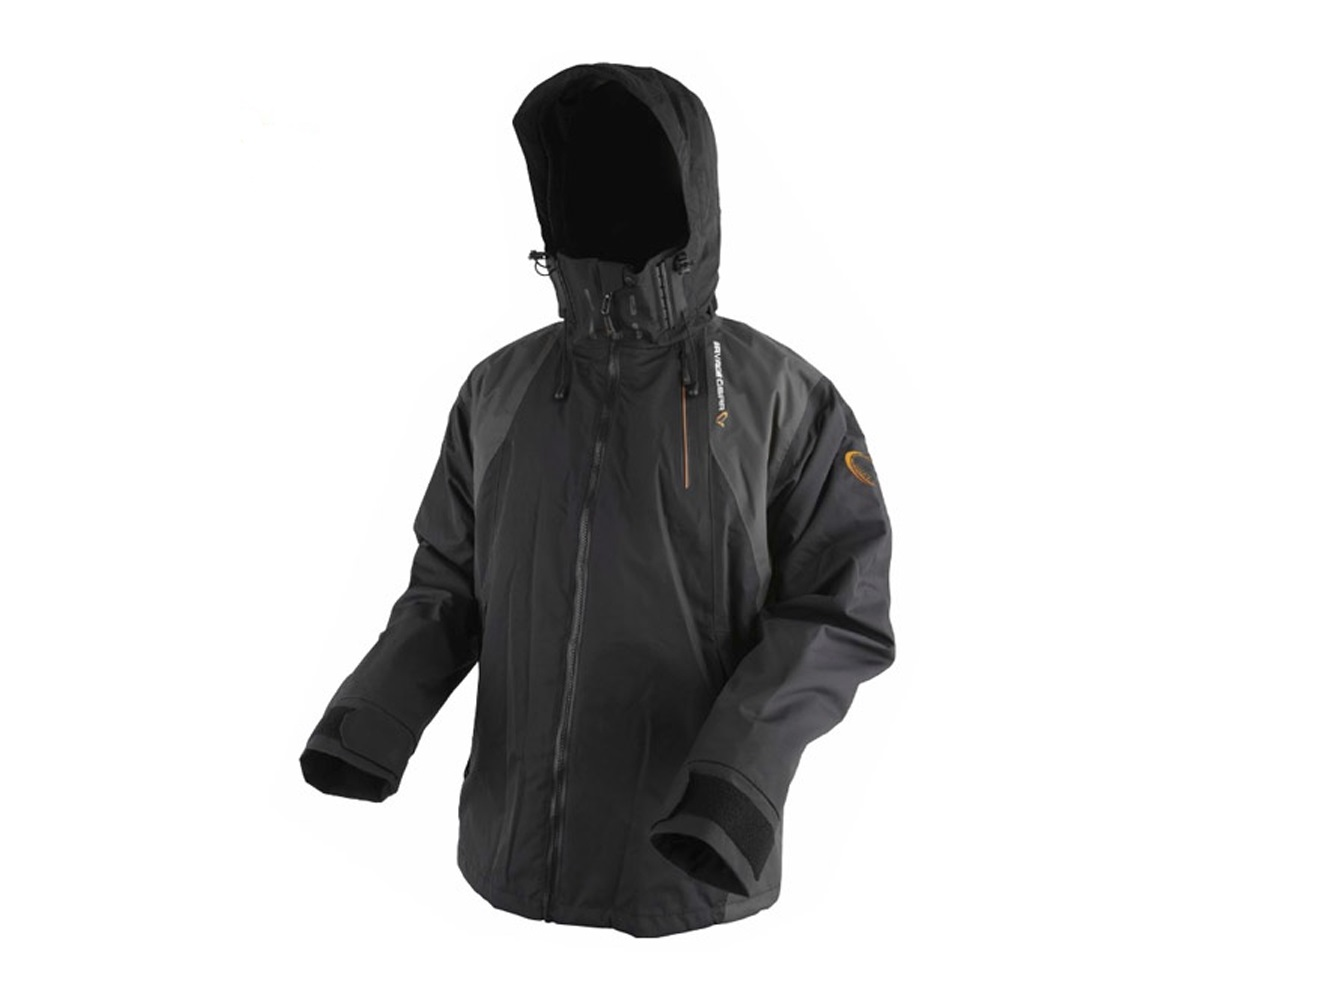 Bunda Black savage Jacket Grey